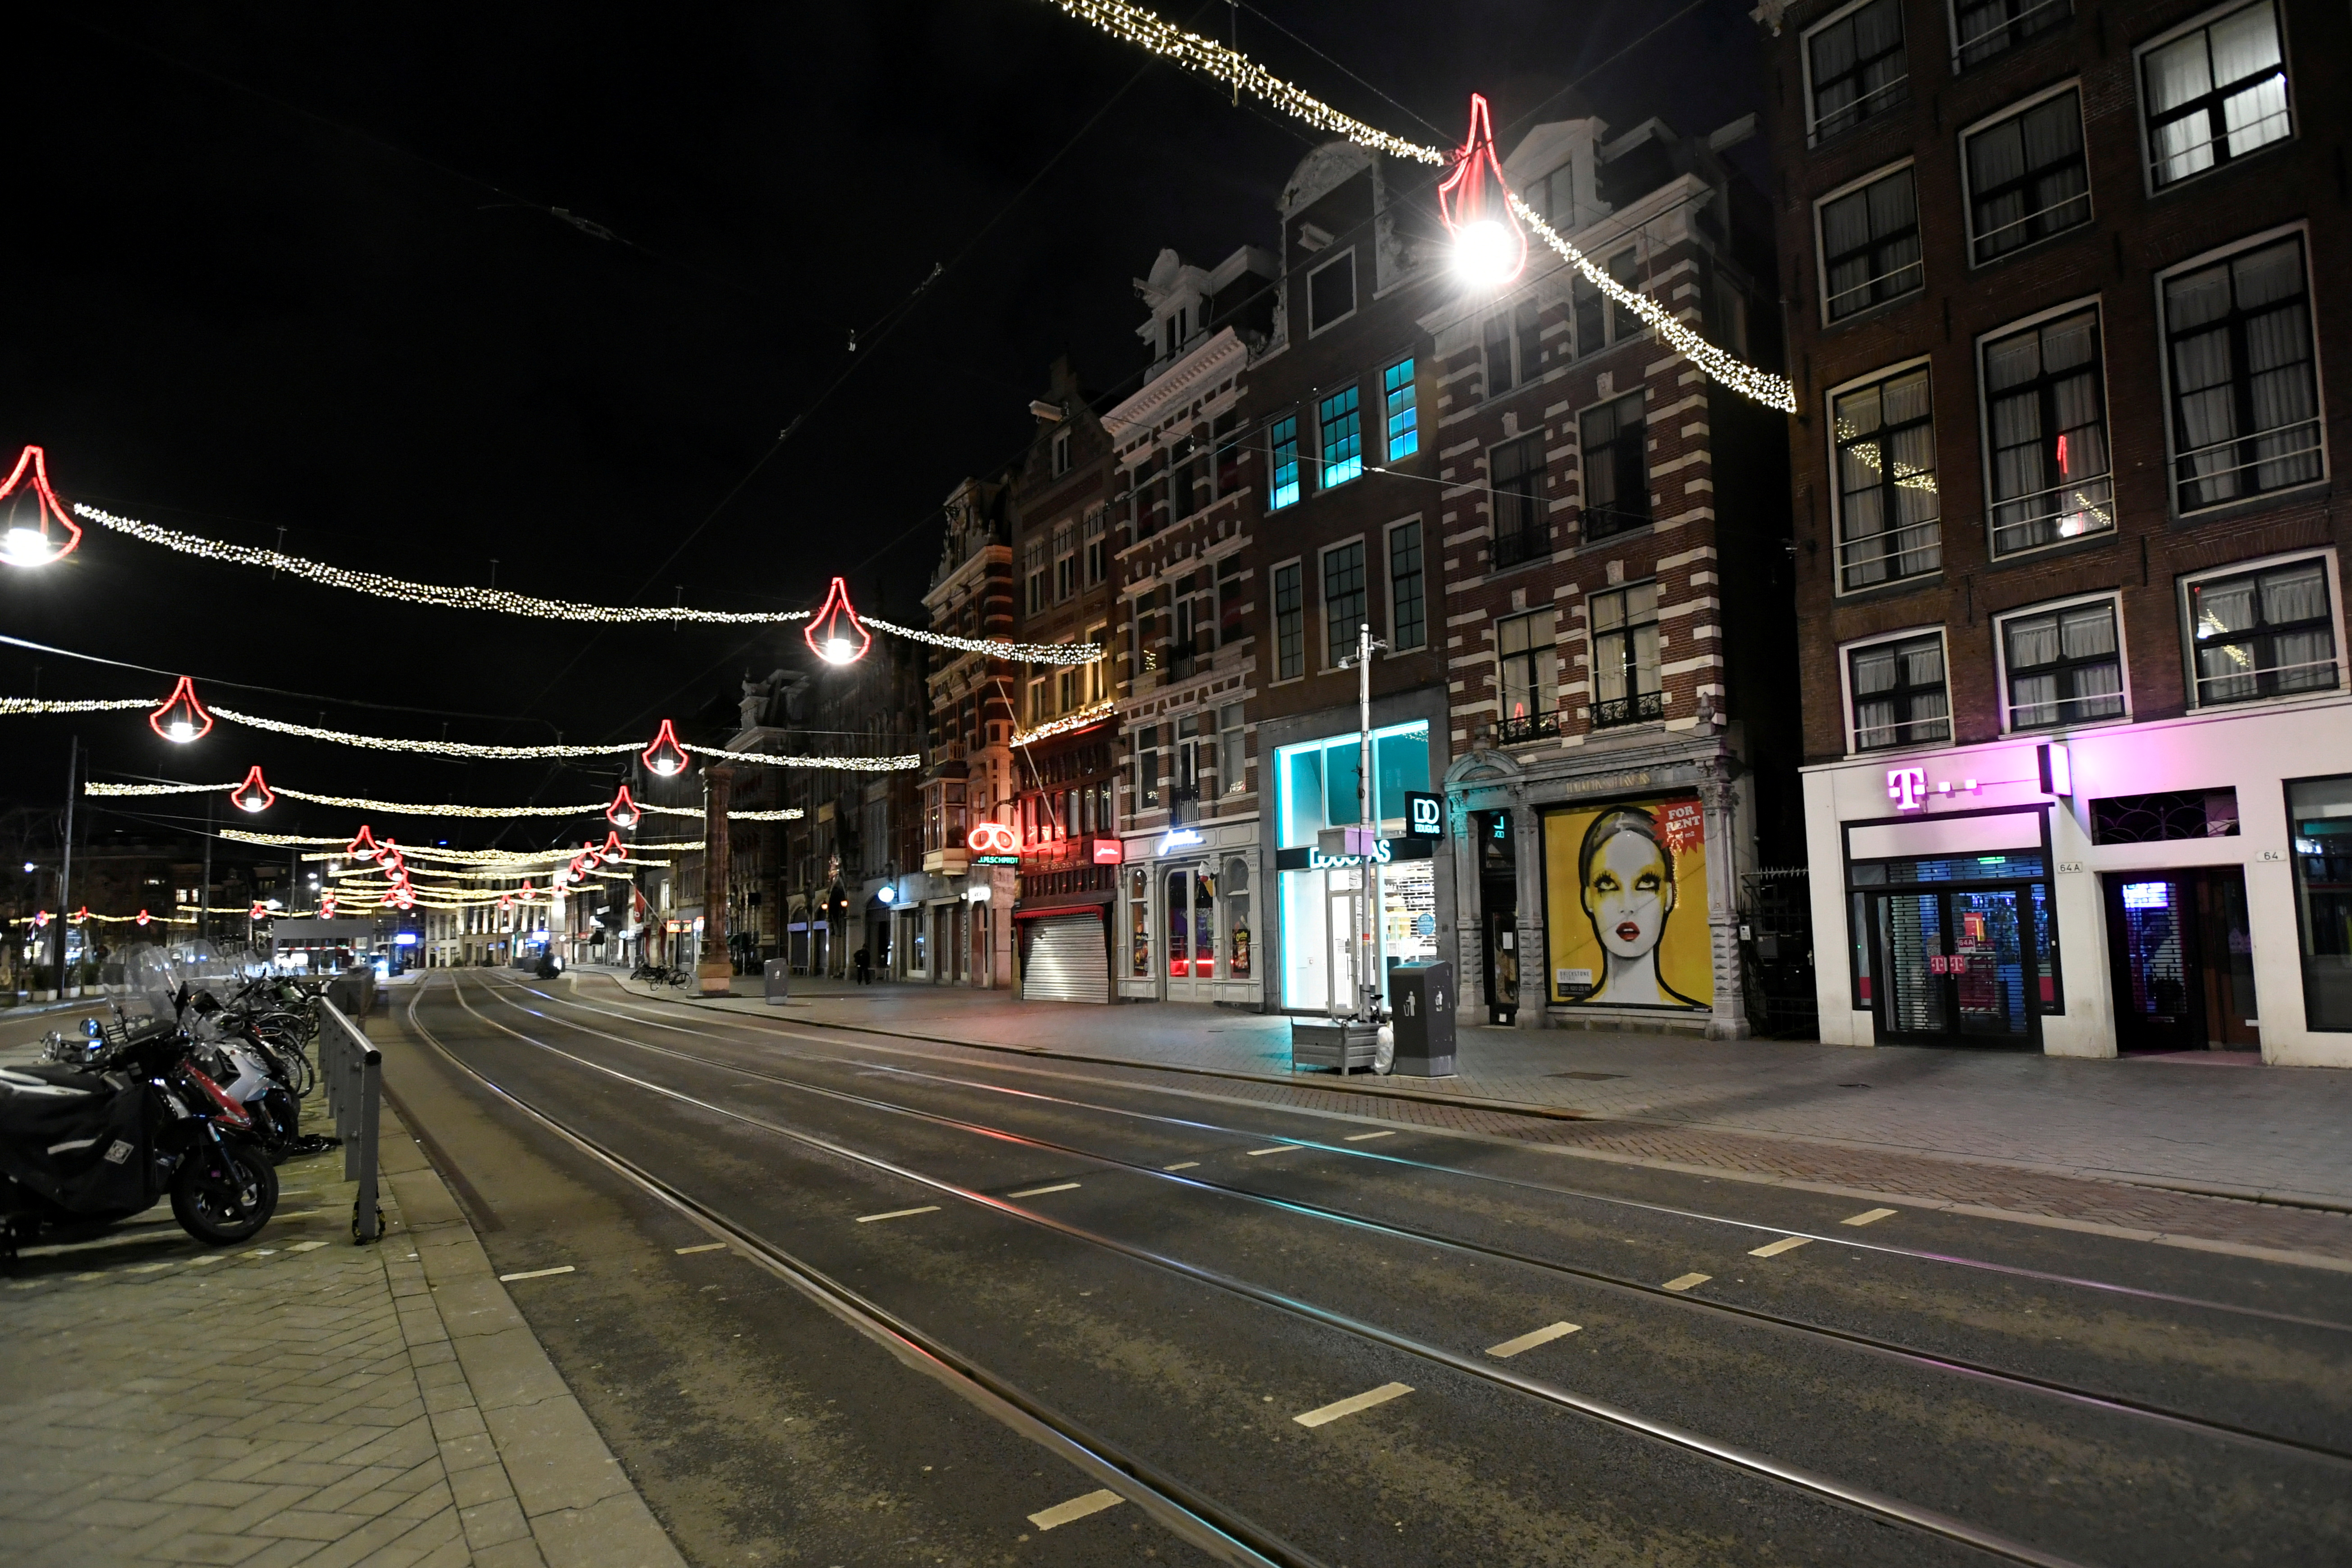 A general view shows a street during a curfew following the coronavirus disease (COVID-19) outbreak in Amsterdam, Netherlands, January 23, 2021. REUTERS/Piroschka Van De Wouw/File Photo